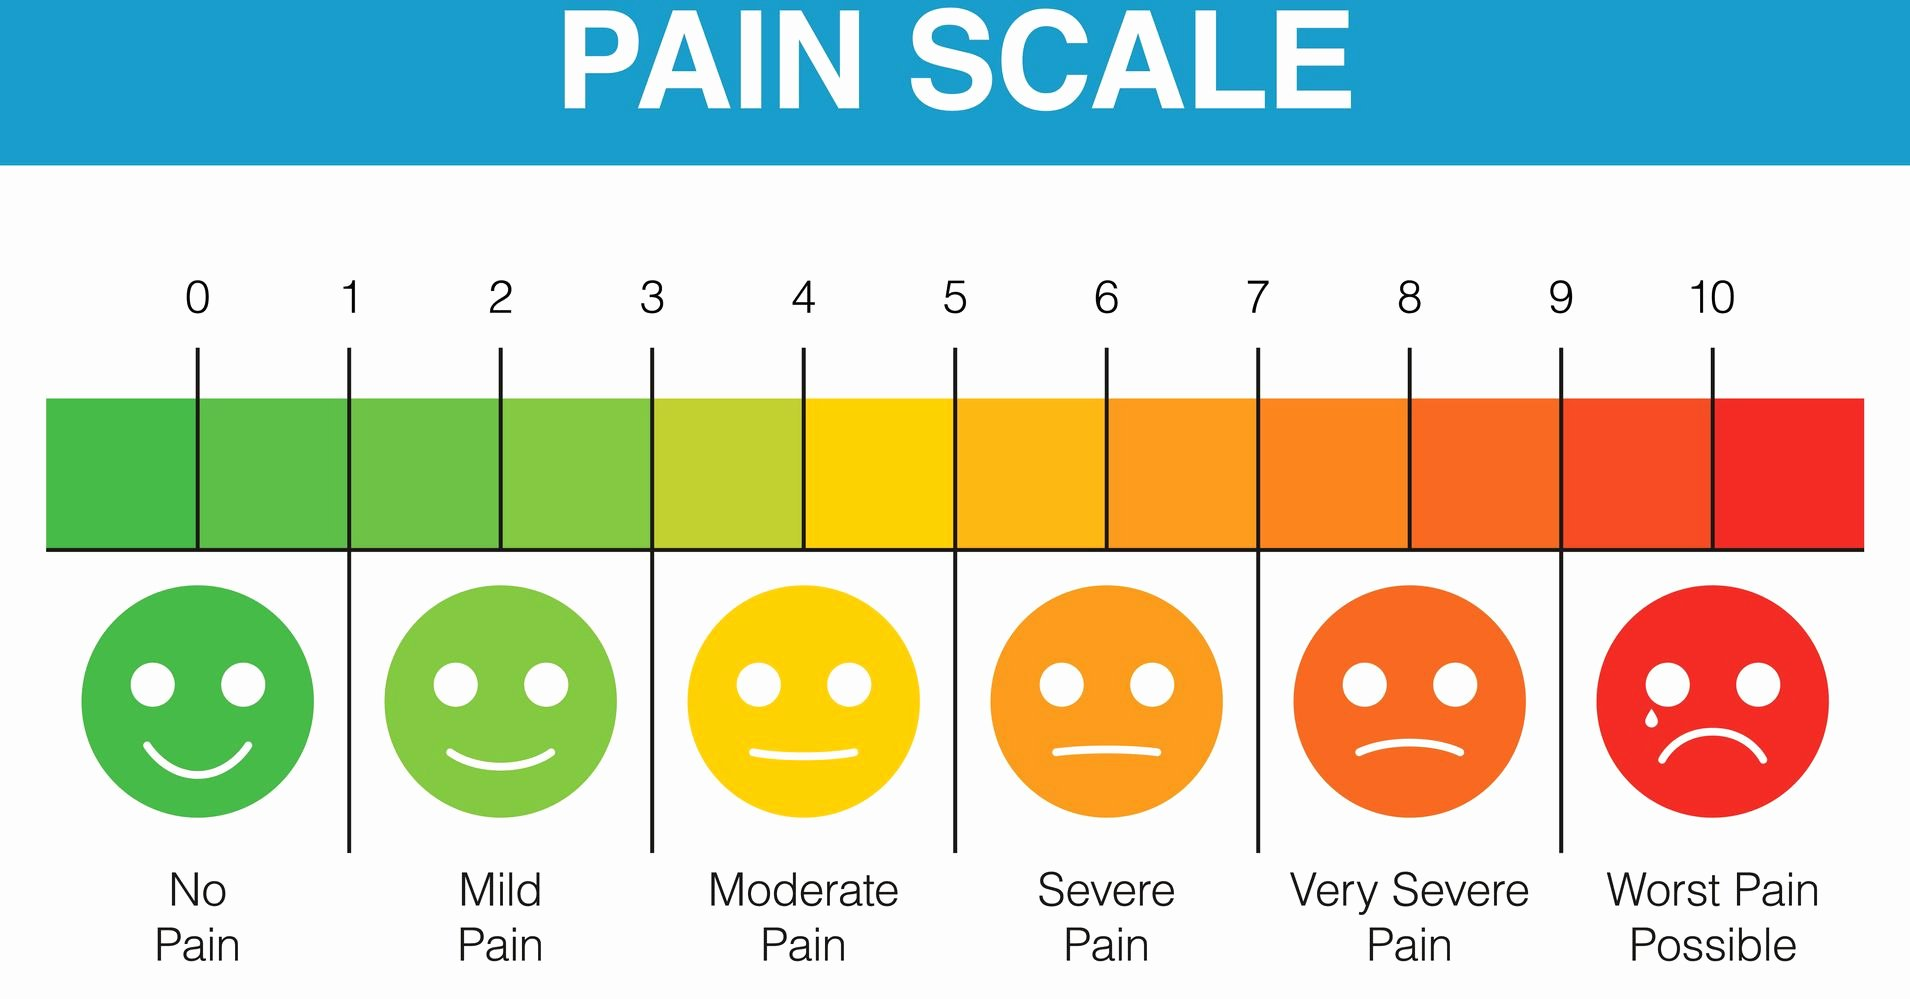 Body Piercing Pain Scale Elegant A Measured Approach to Pain tools to Help Patients and